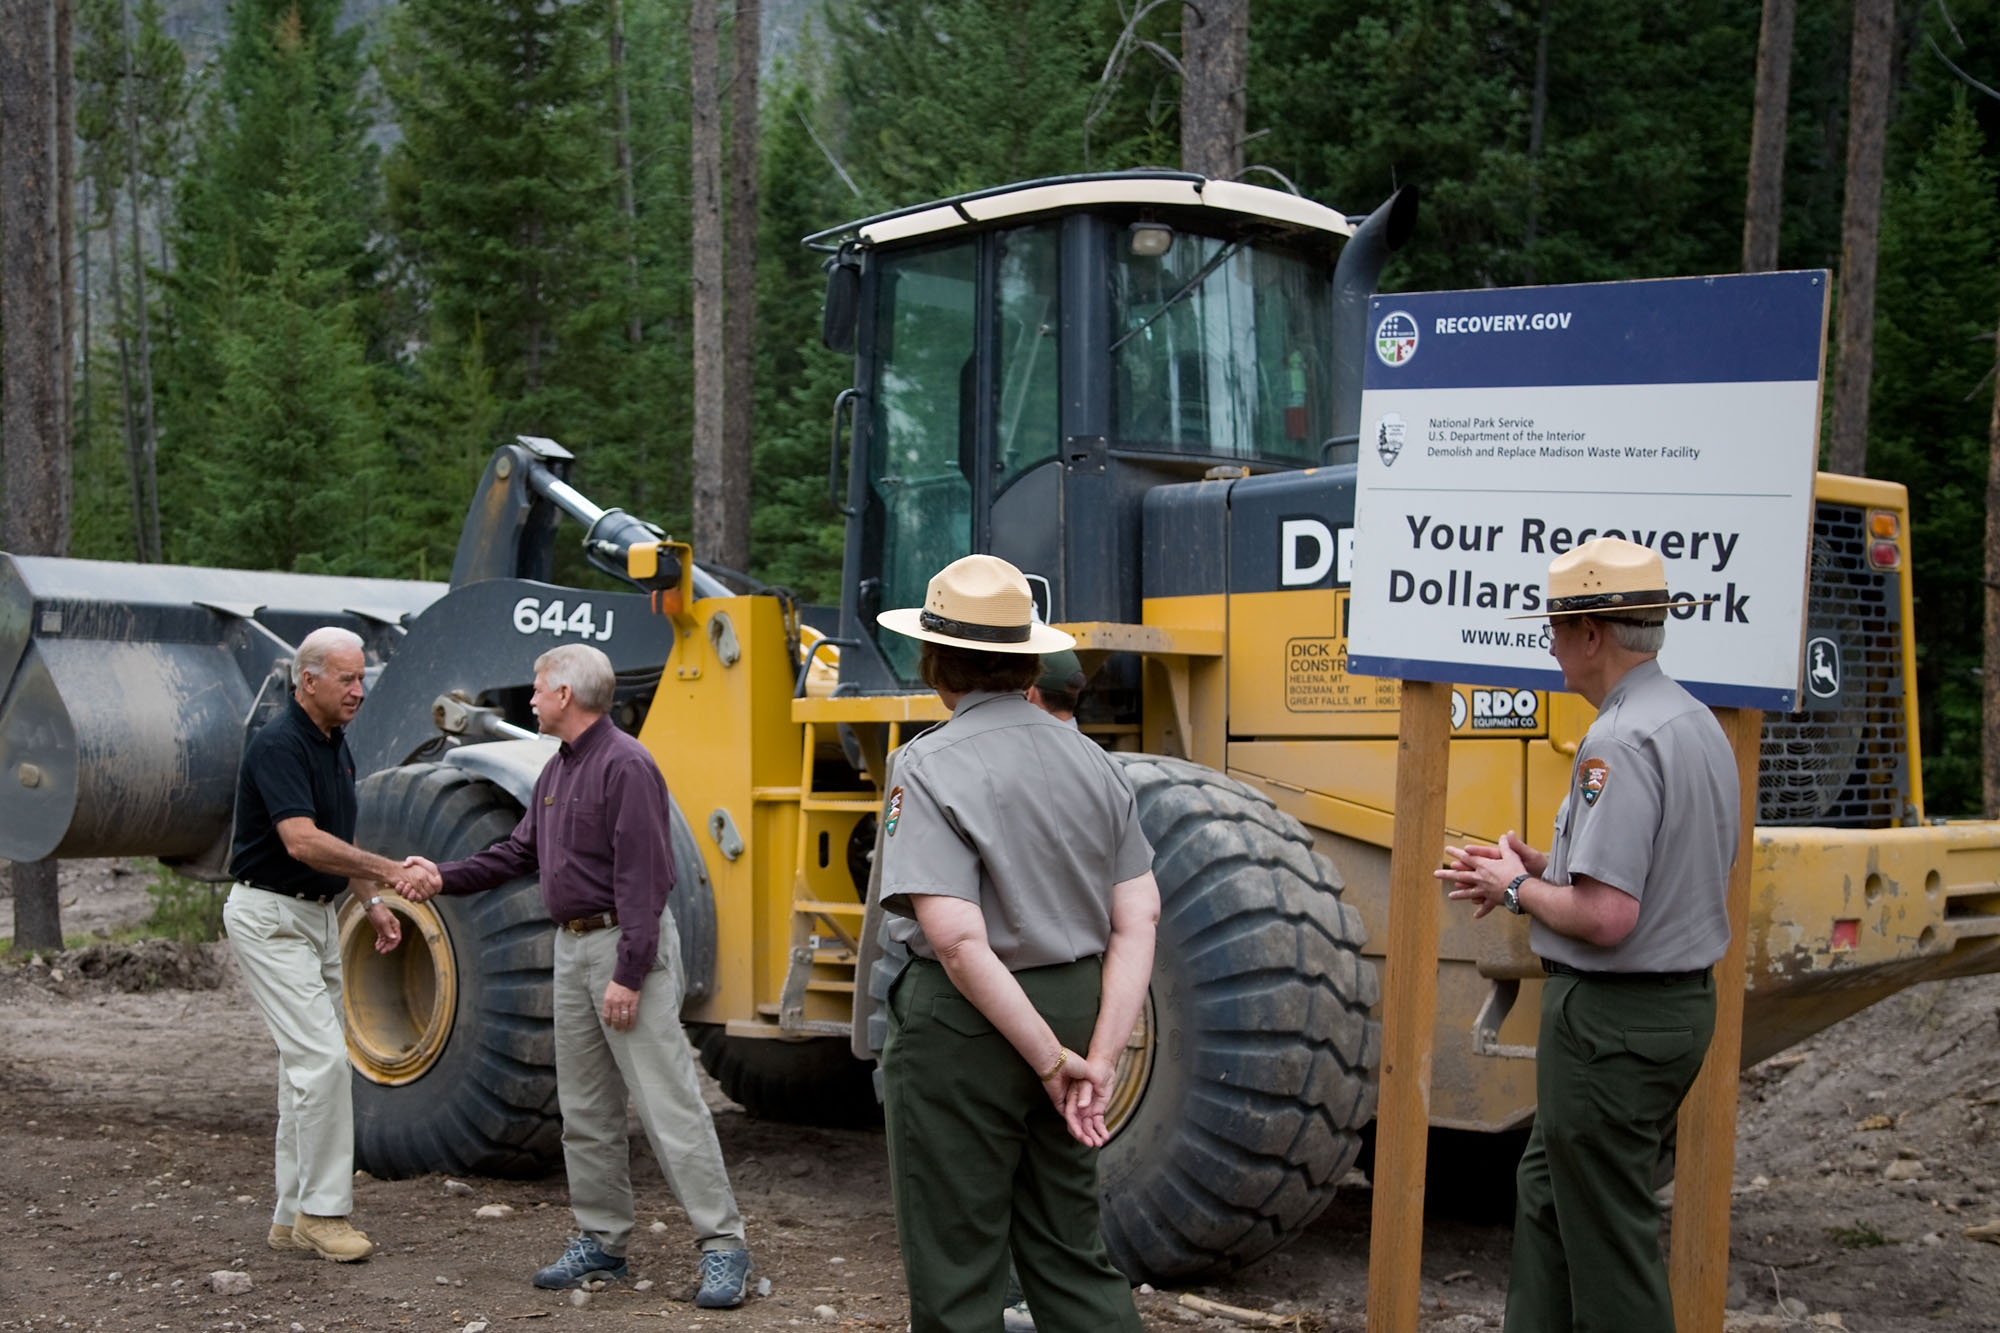 Vice President Biden at Yellowstone National Park